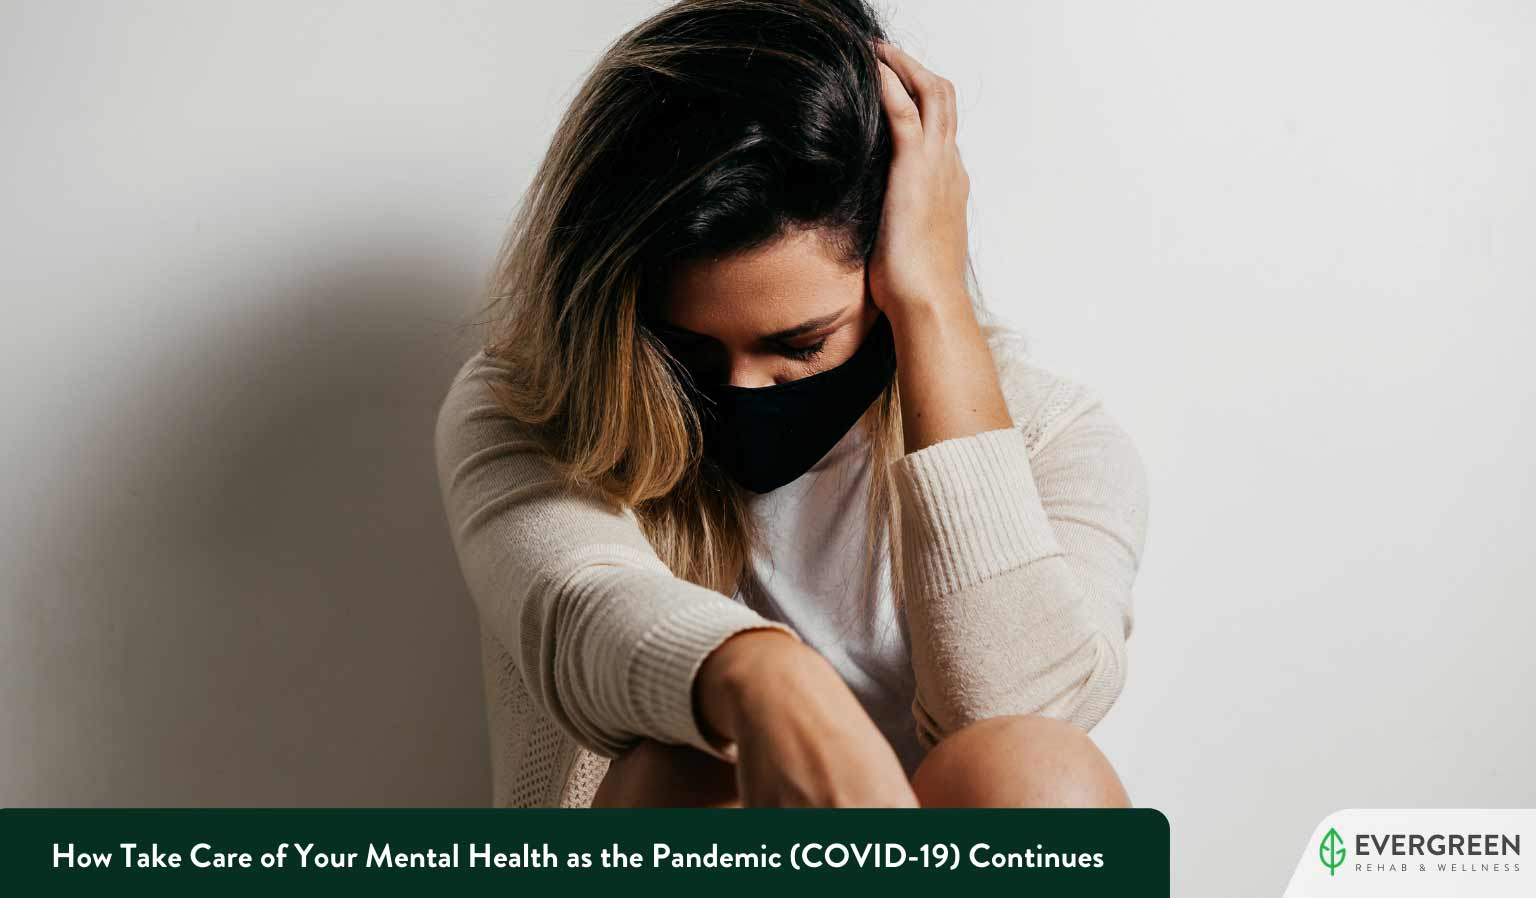 How Take Care of Your Mental Health as the Pandemic (COVID-19) Continues